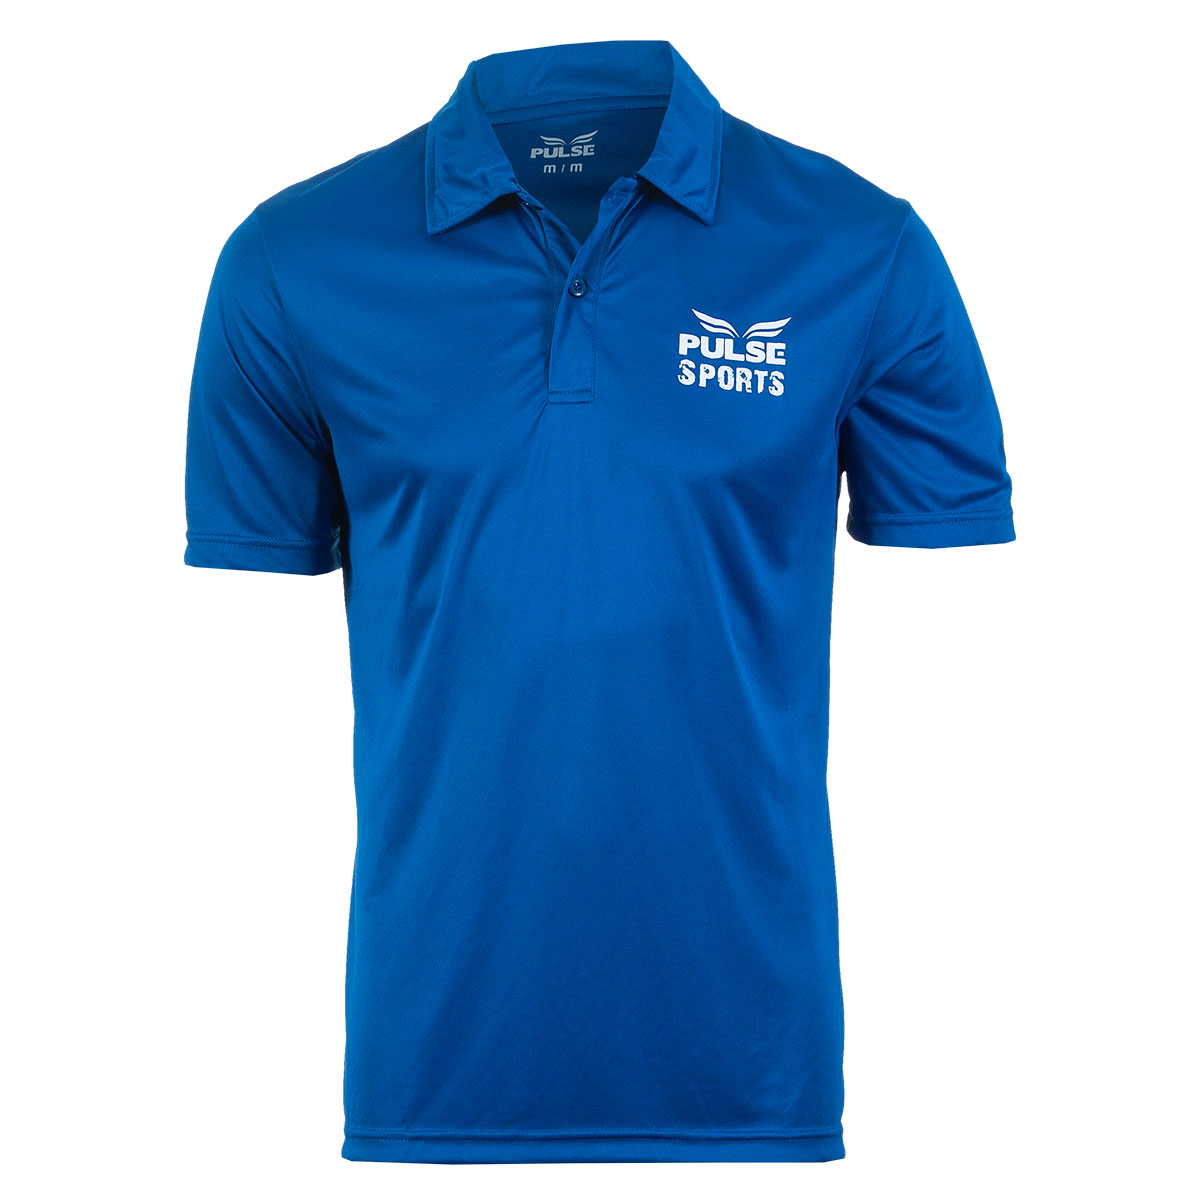 Camisa Polo Masc. Pulse Sports Casual - Azul